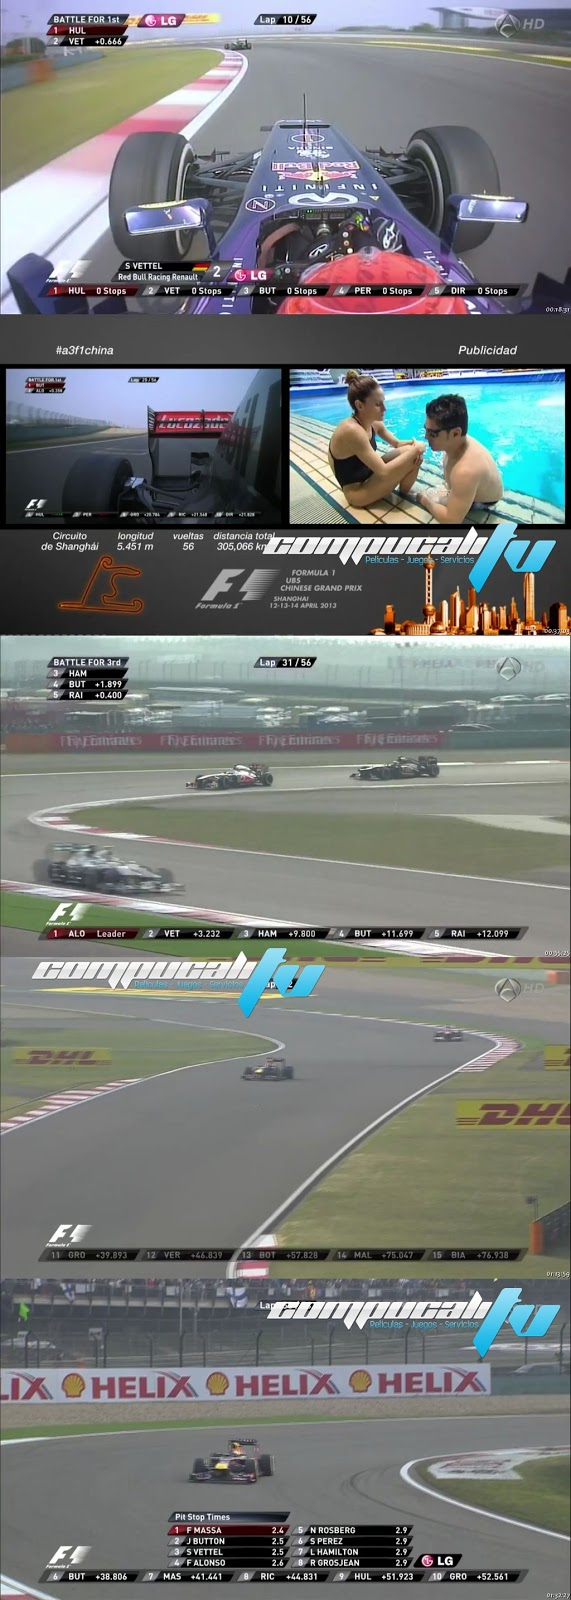 Carrera GP China Formula 1 Abril 14 HD 2013